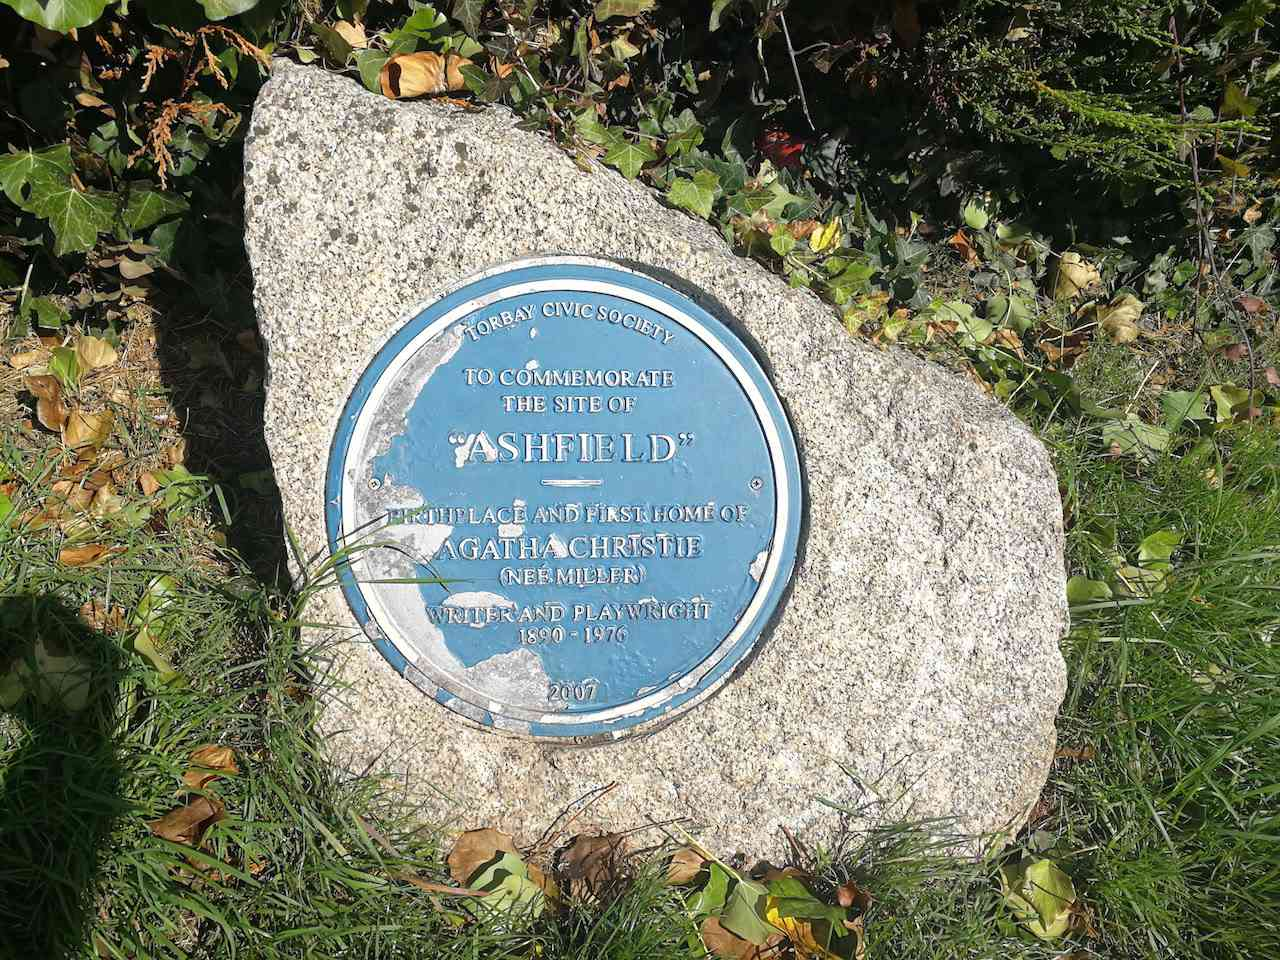 The plaque commemorating the birth place of Agatha Christie